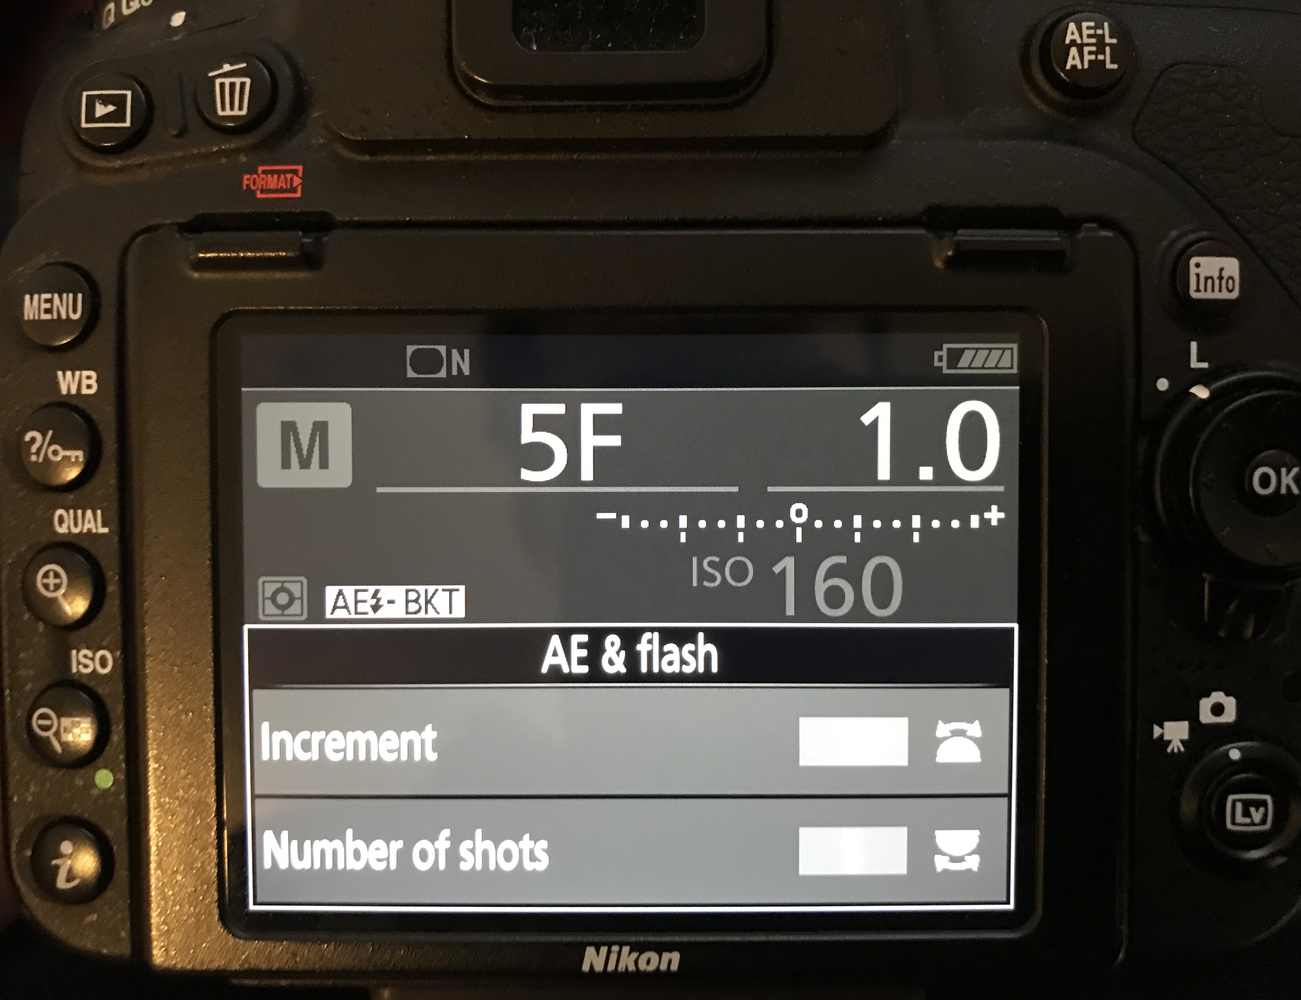 camera display showing autobracket settings